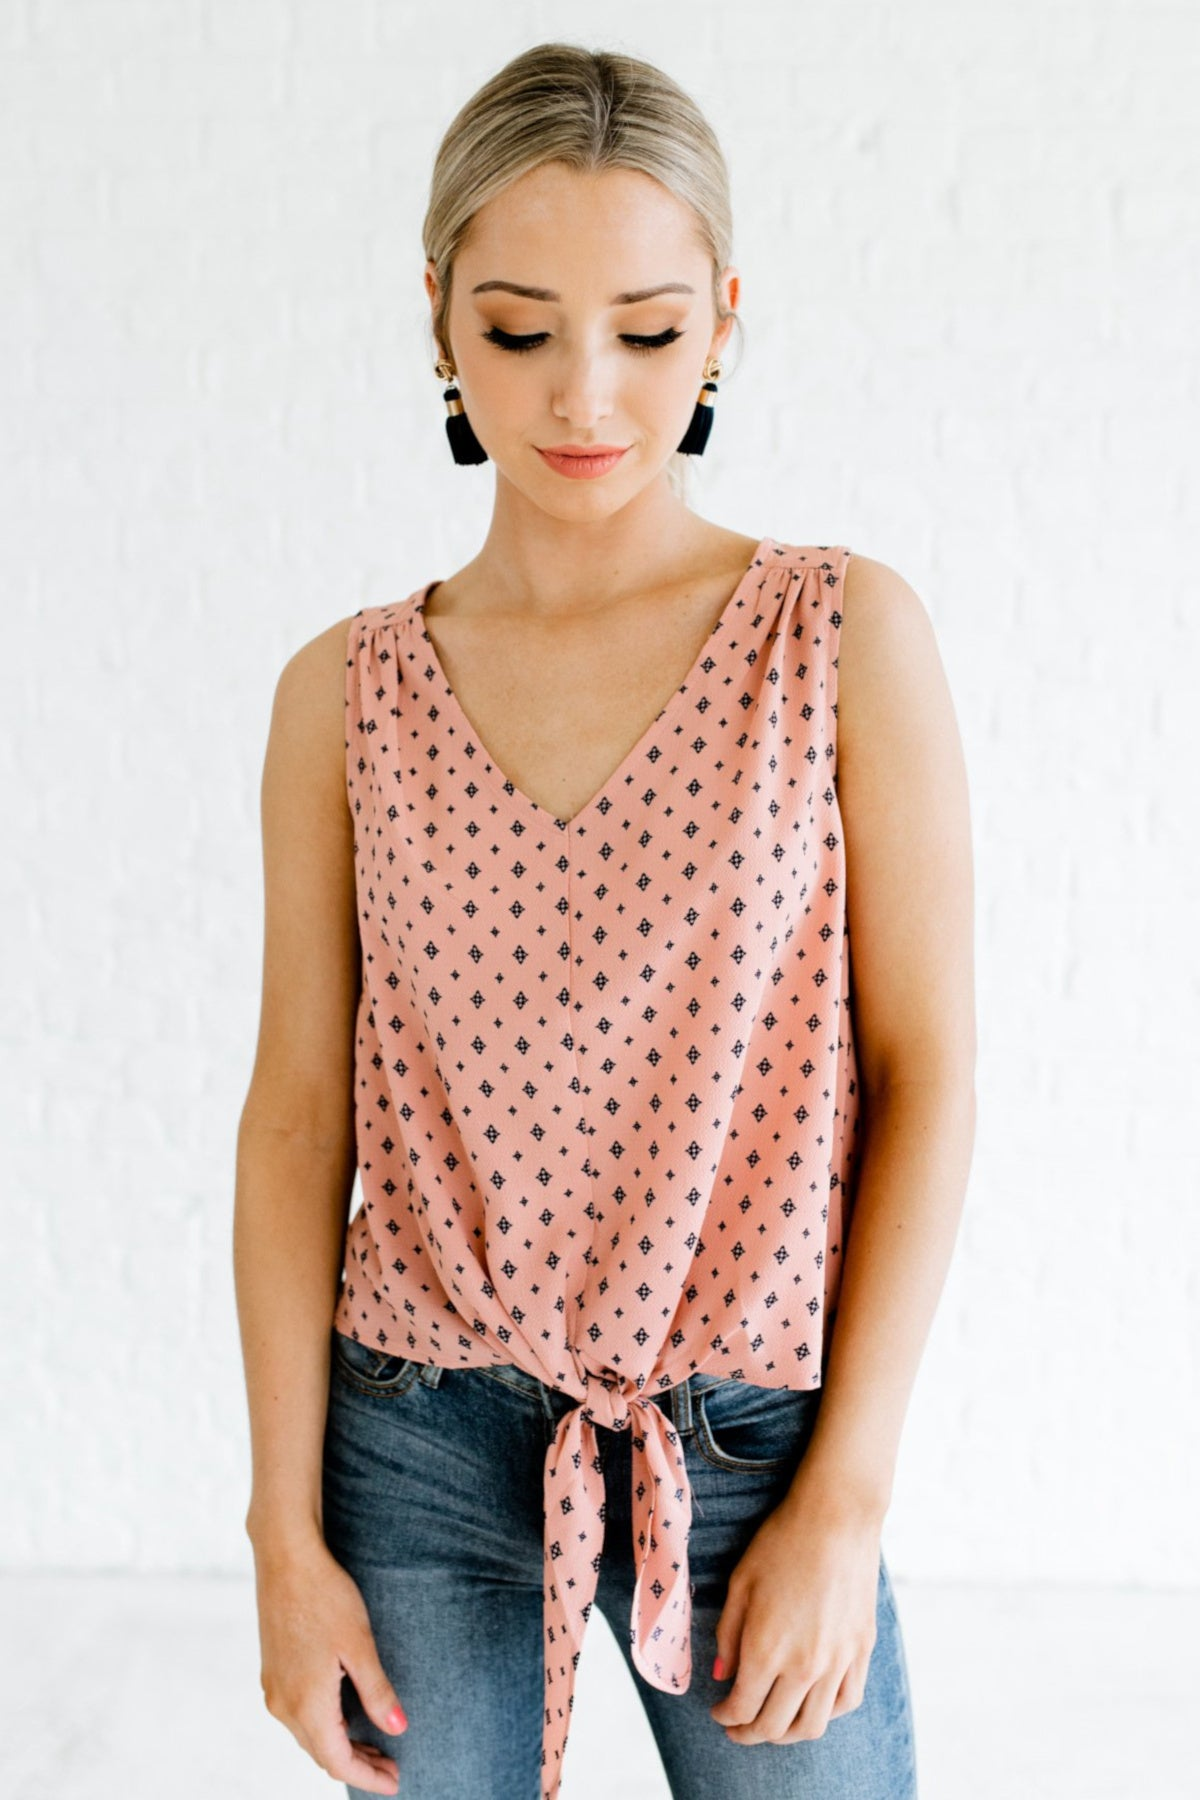 Salmon Pink Navy Patterned Diamond Print Tie Front Knot Blouses and Tanks